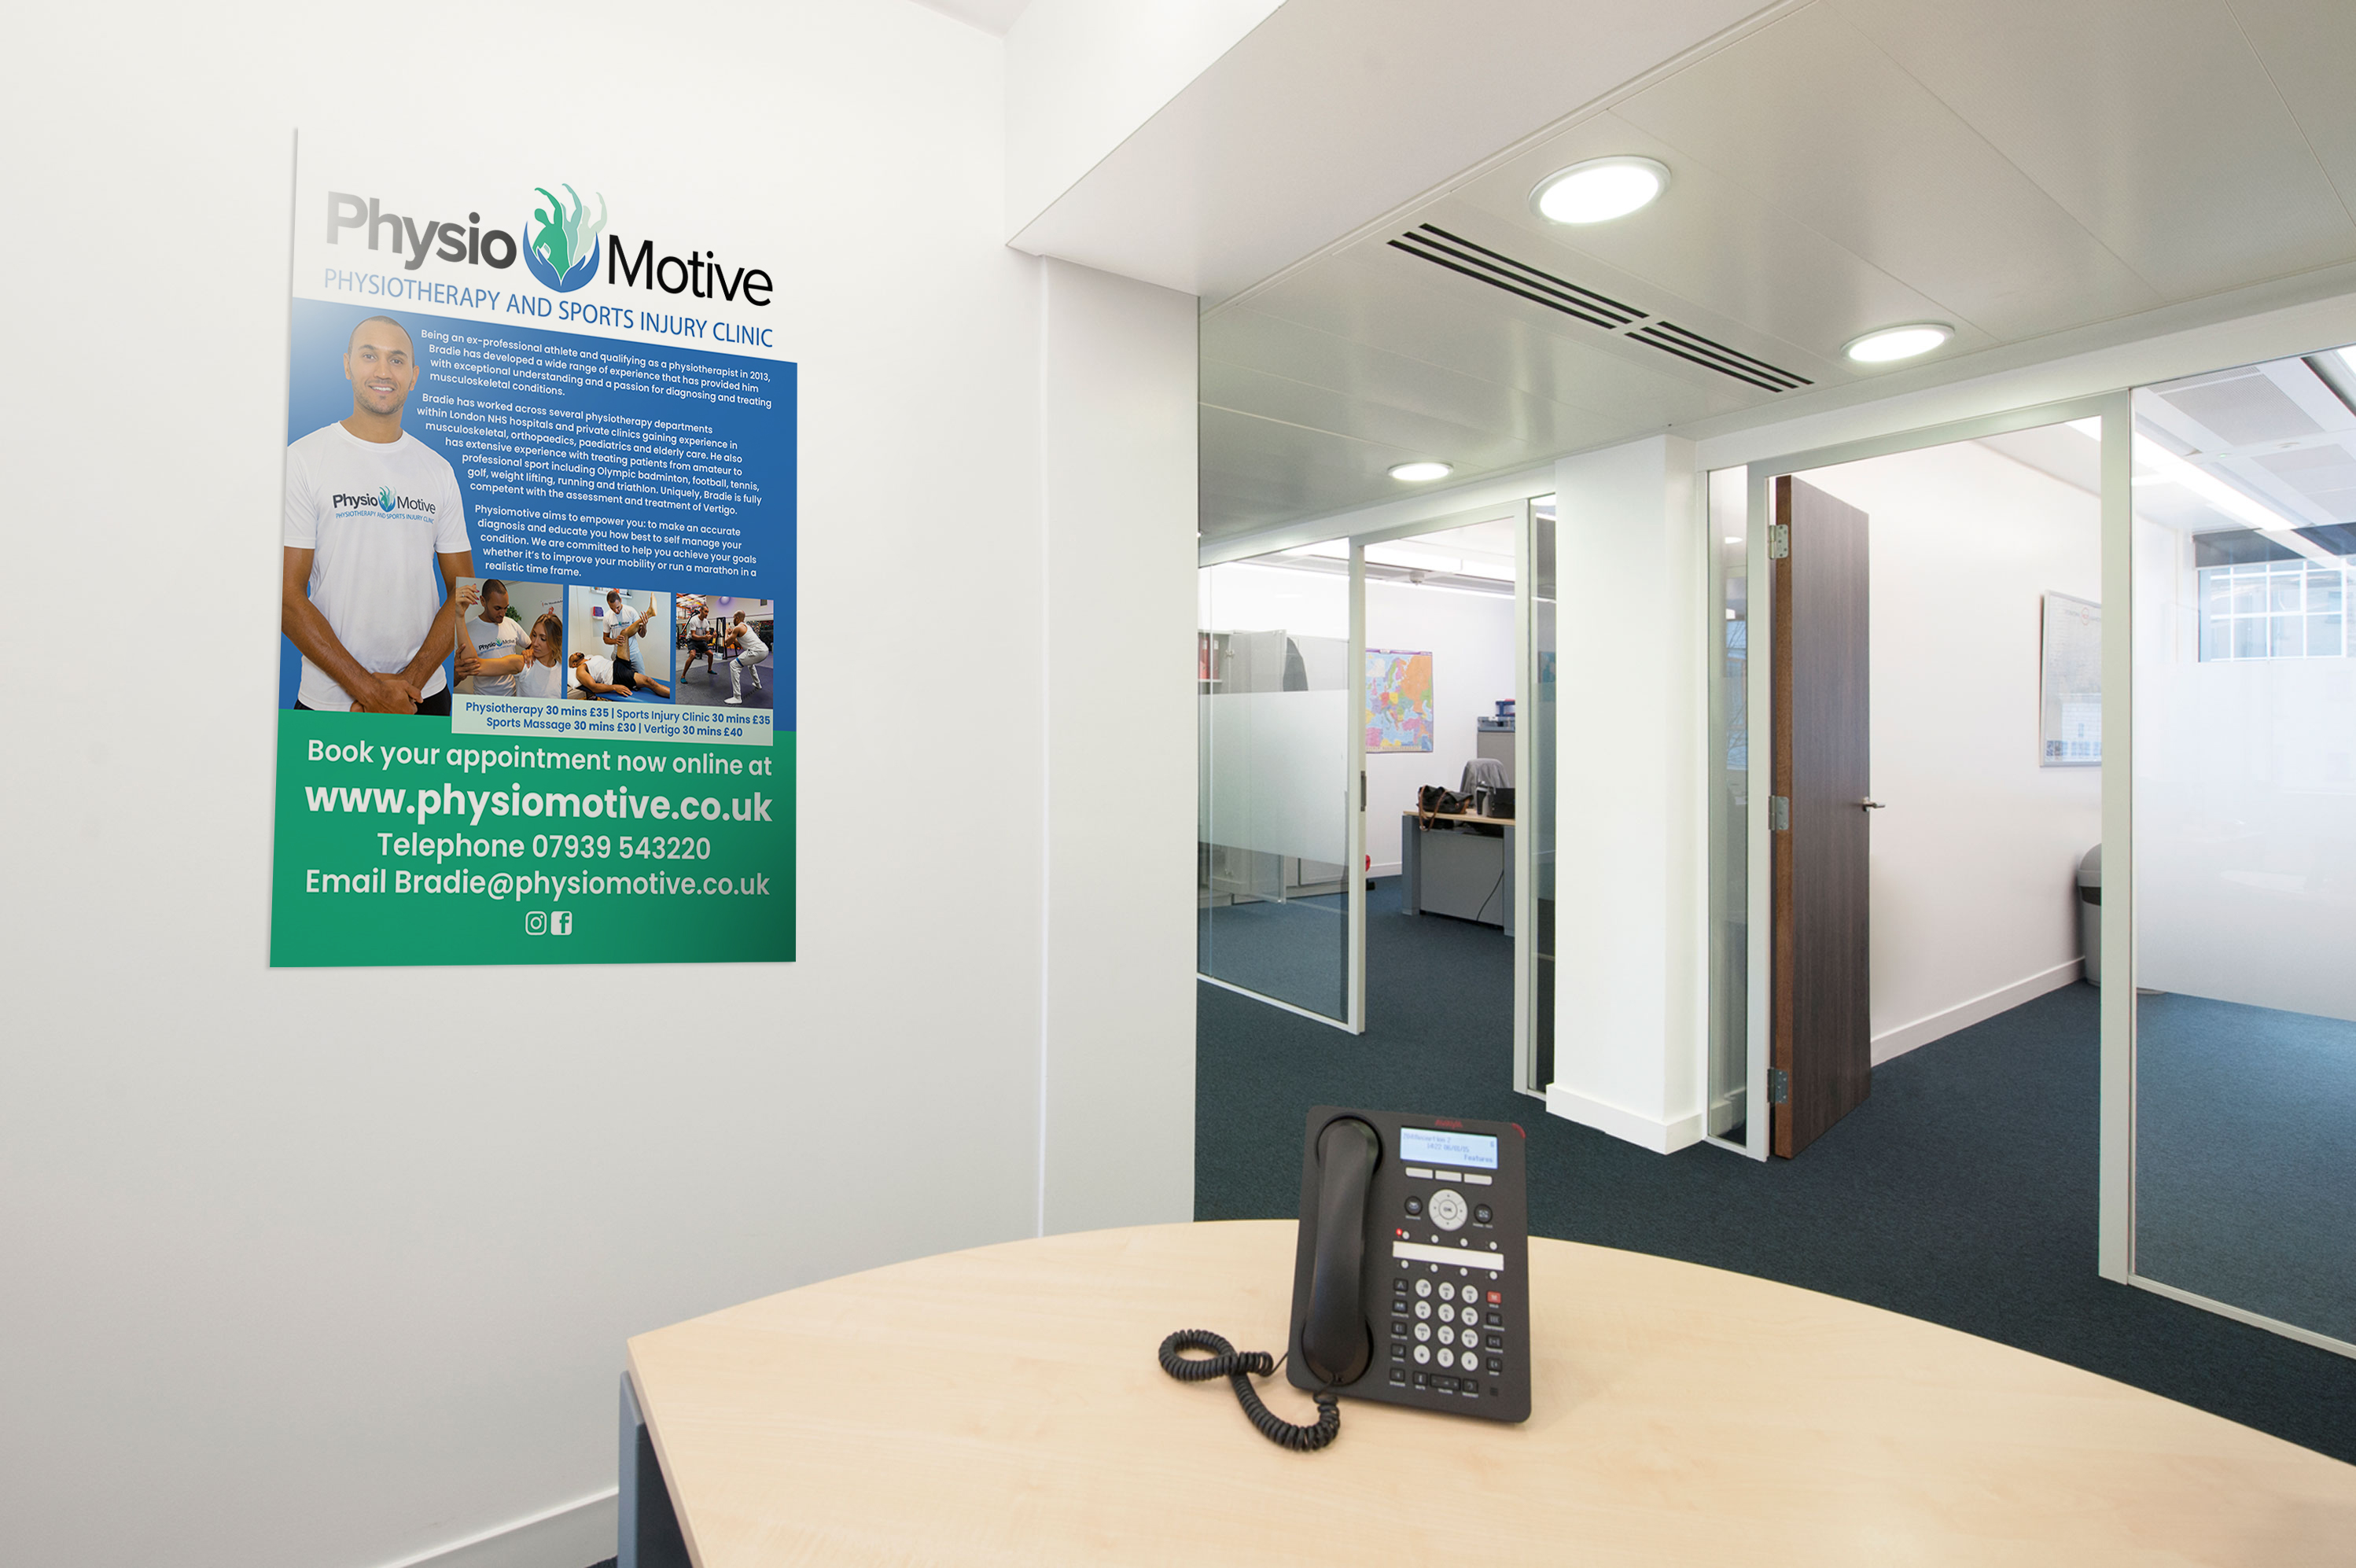 Helping Physio Motive promote their brand